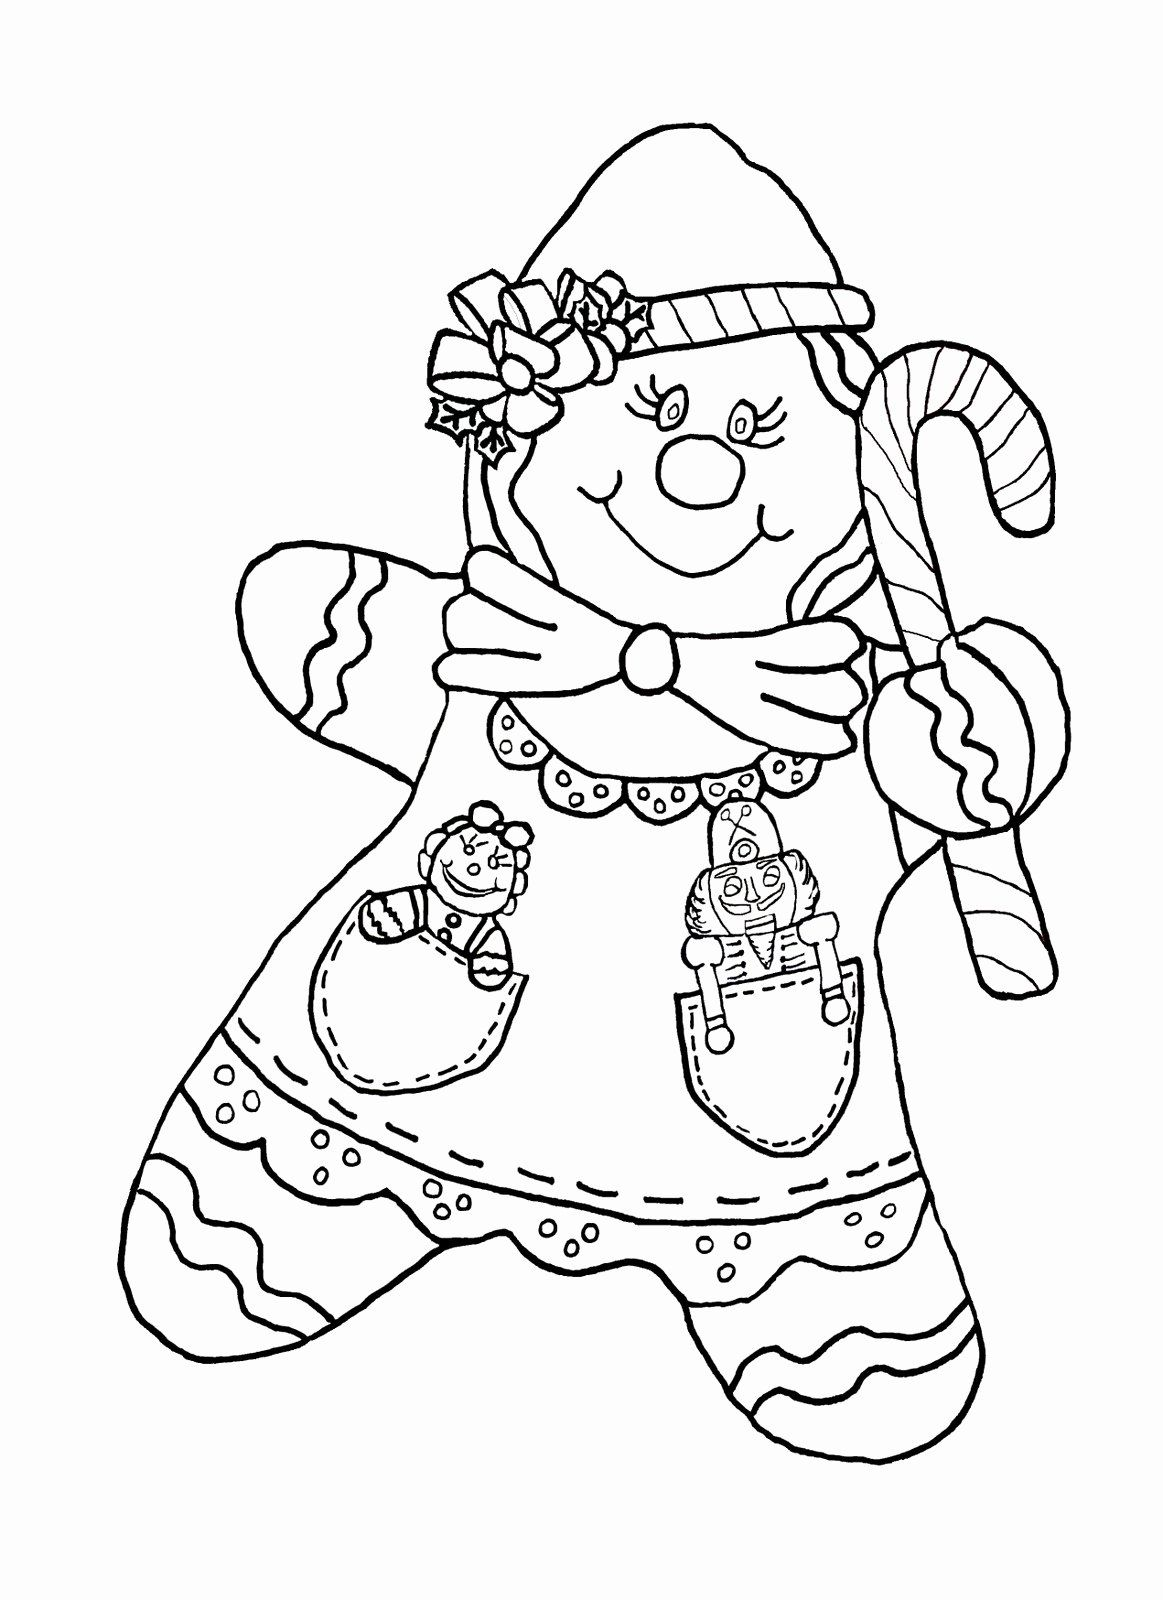 gingerbread girl printable free printable gingerbread man coloring pages for kids printable girl gingerbread